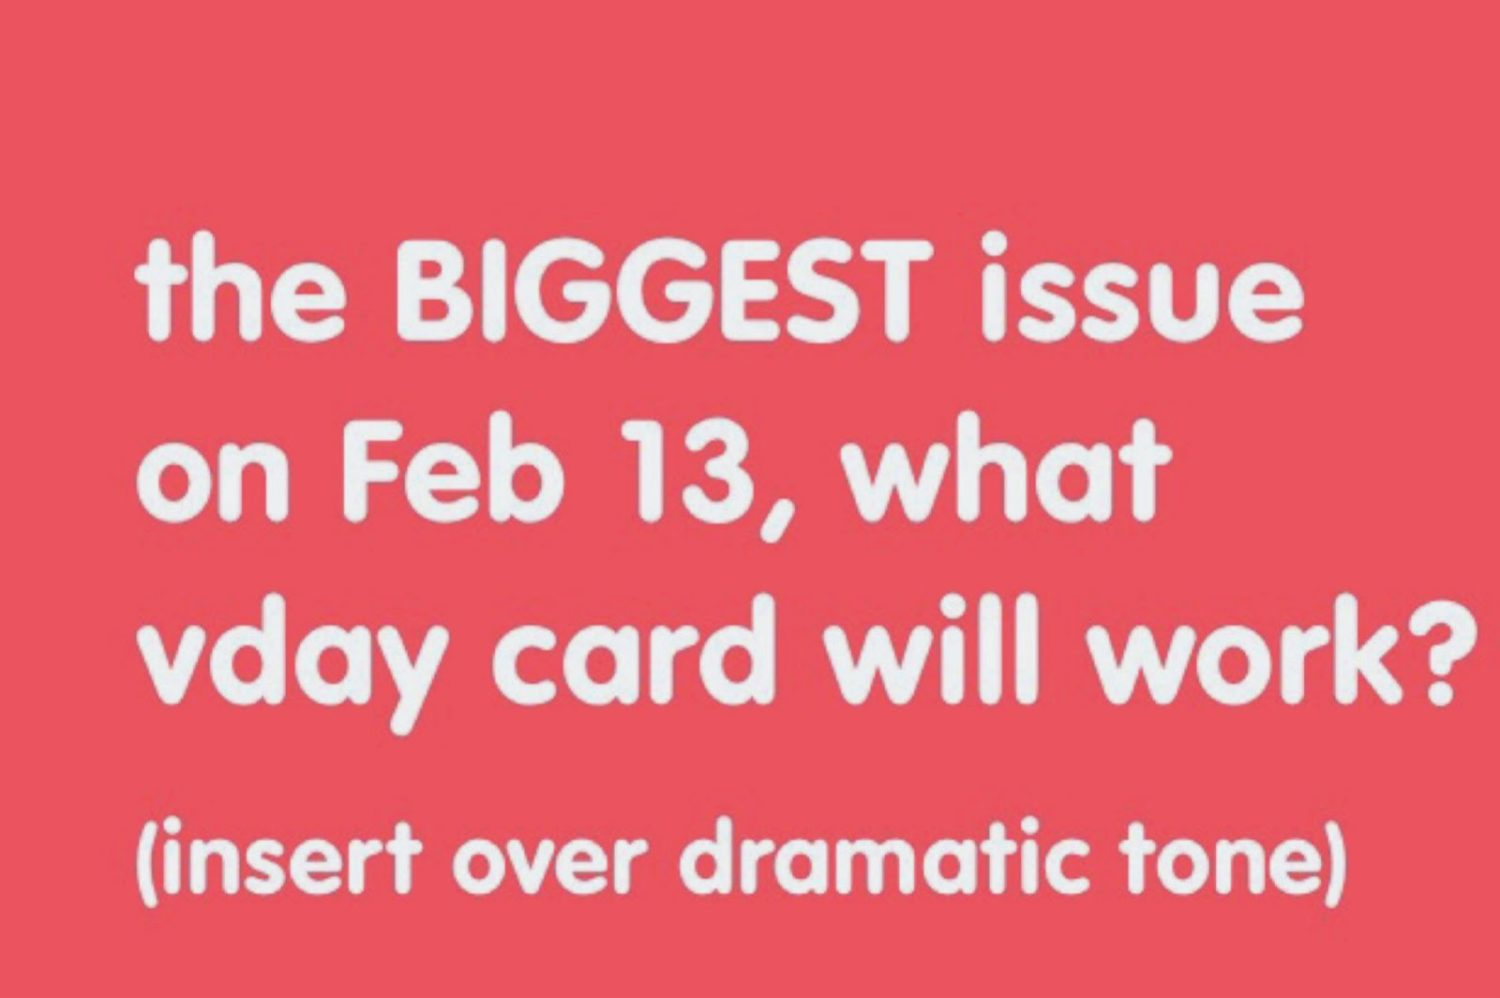 vday card dilemma